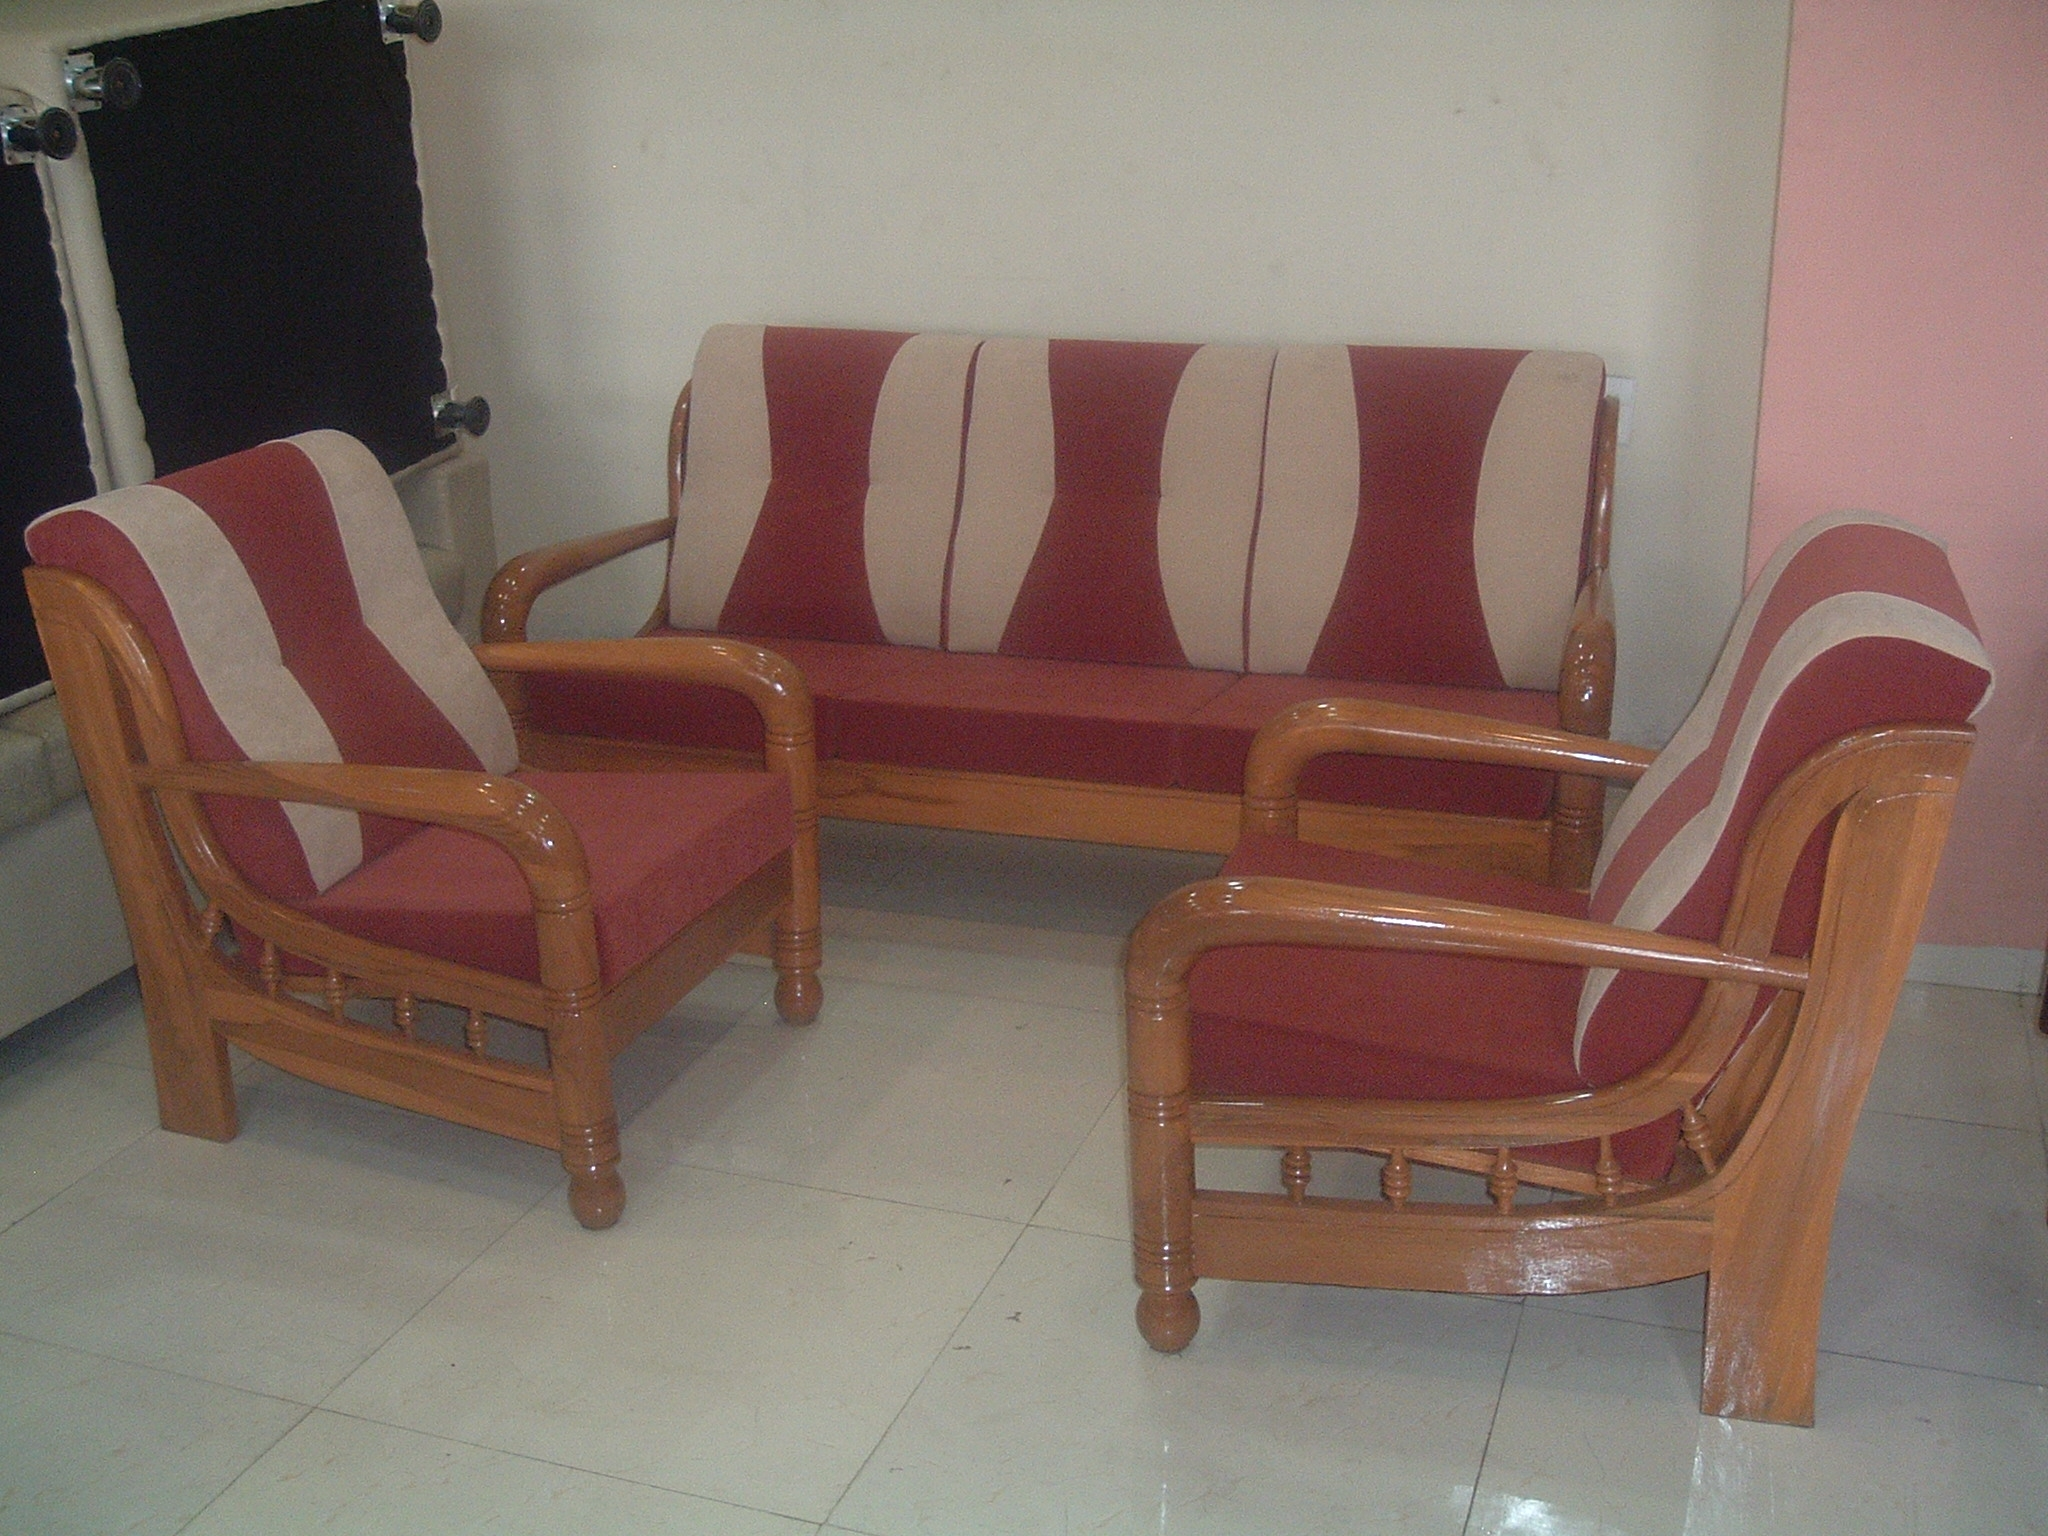 Magnificent Wood Sofa Set with Cushions 2048 x 1536 · 1719 kB · jpeg